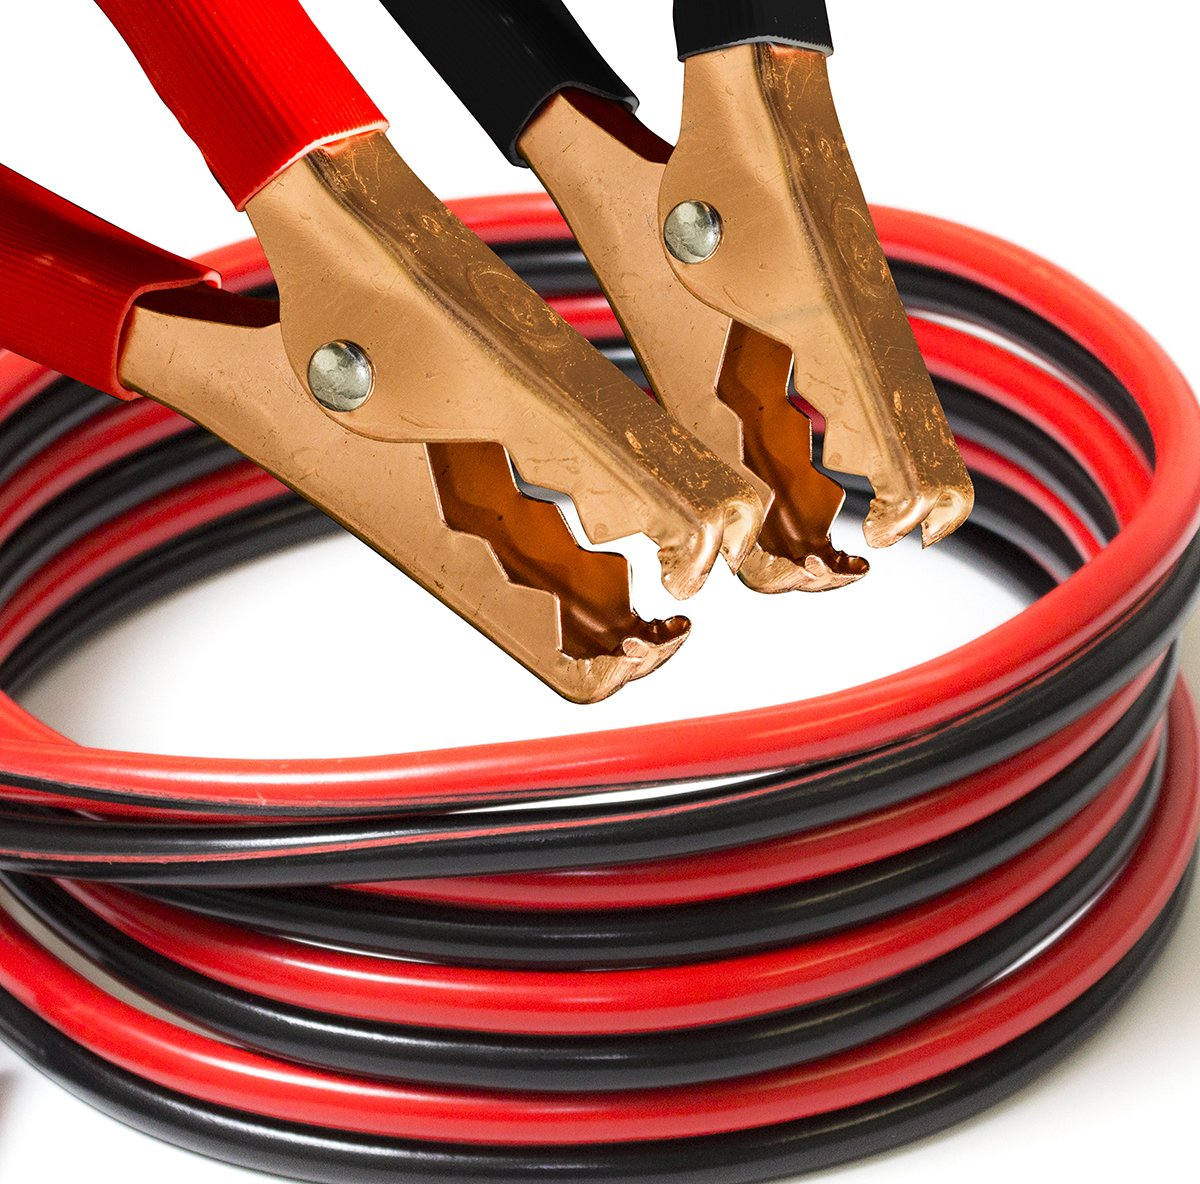 OxGord Jumper Cable 4 Gauge x 25 Feet Commercial Grade 500 AMP Non Tangle Battery Booster Starter with Carry Case CABC-04-25